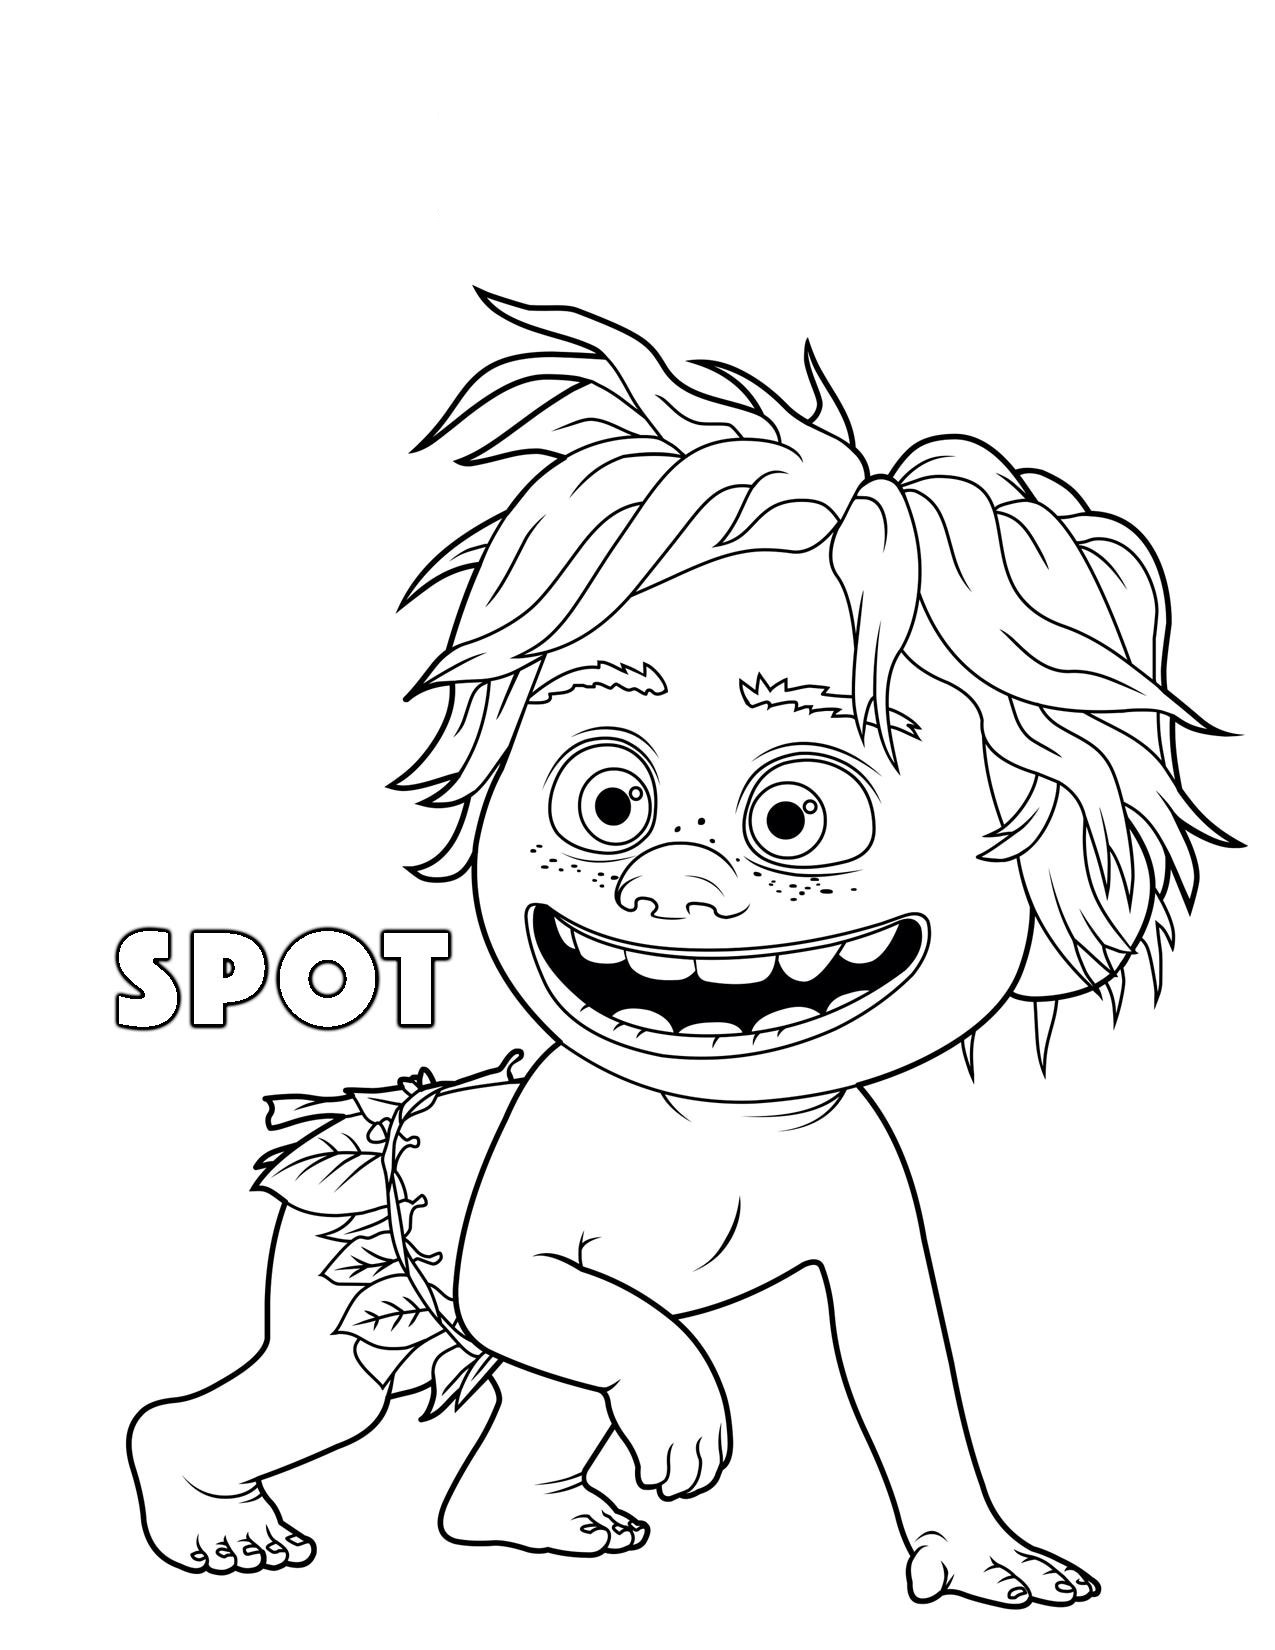 printable the good dinosaur spot coloring pages for kids kids